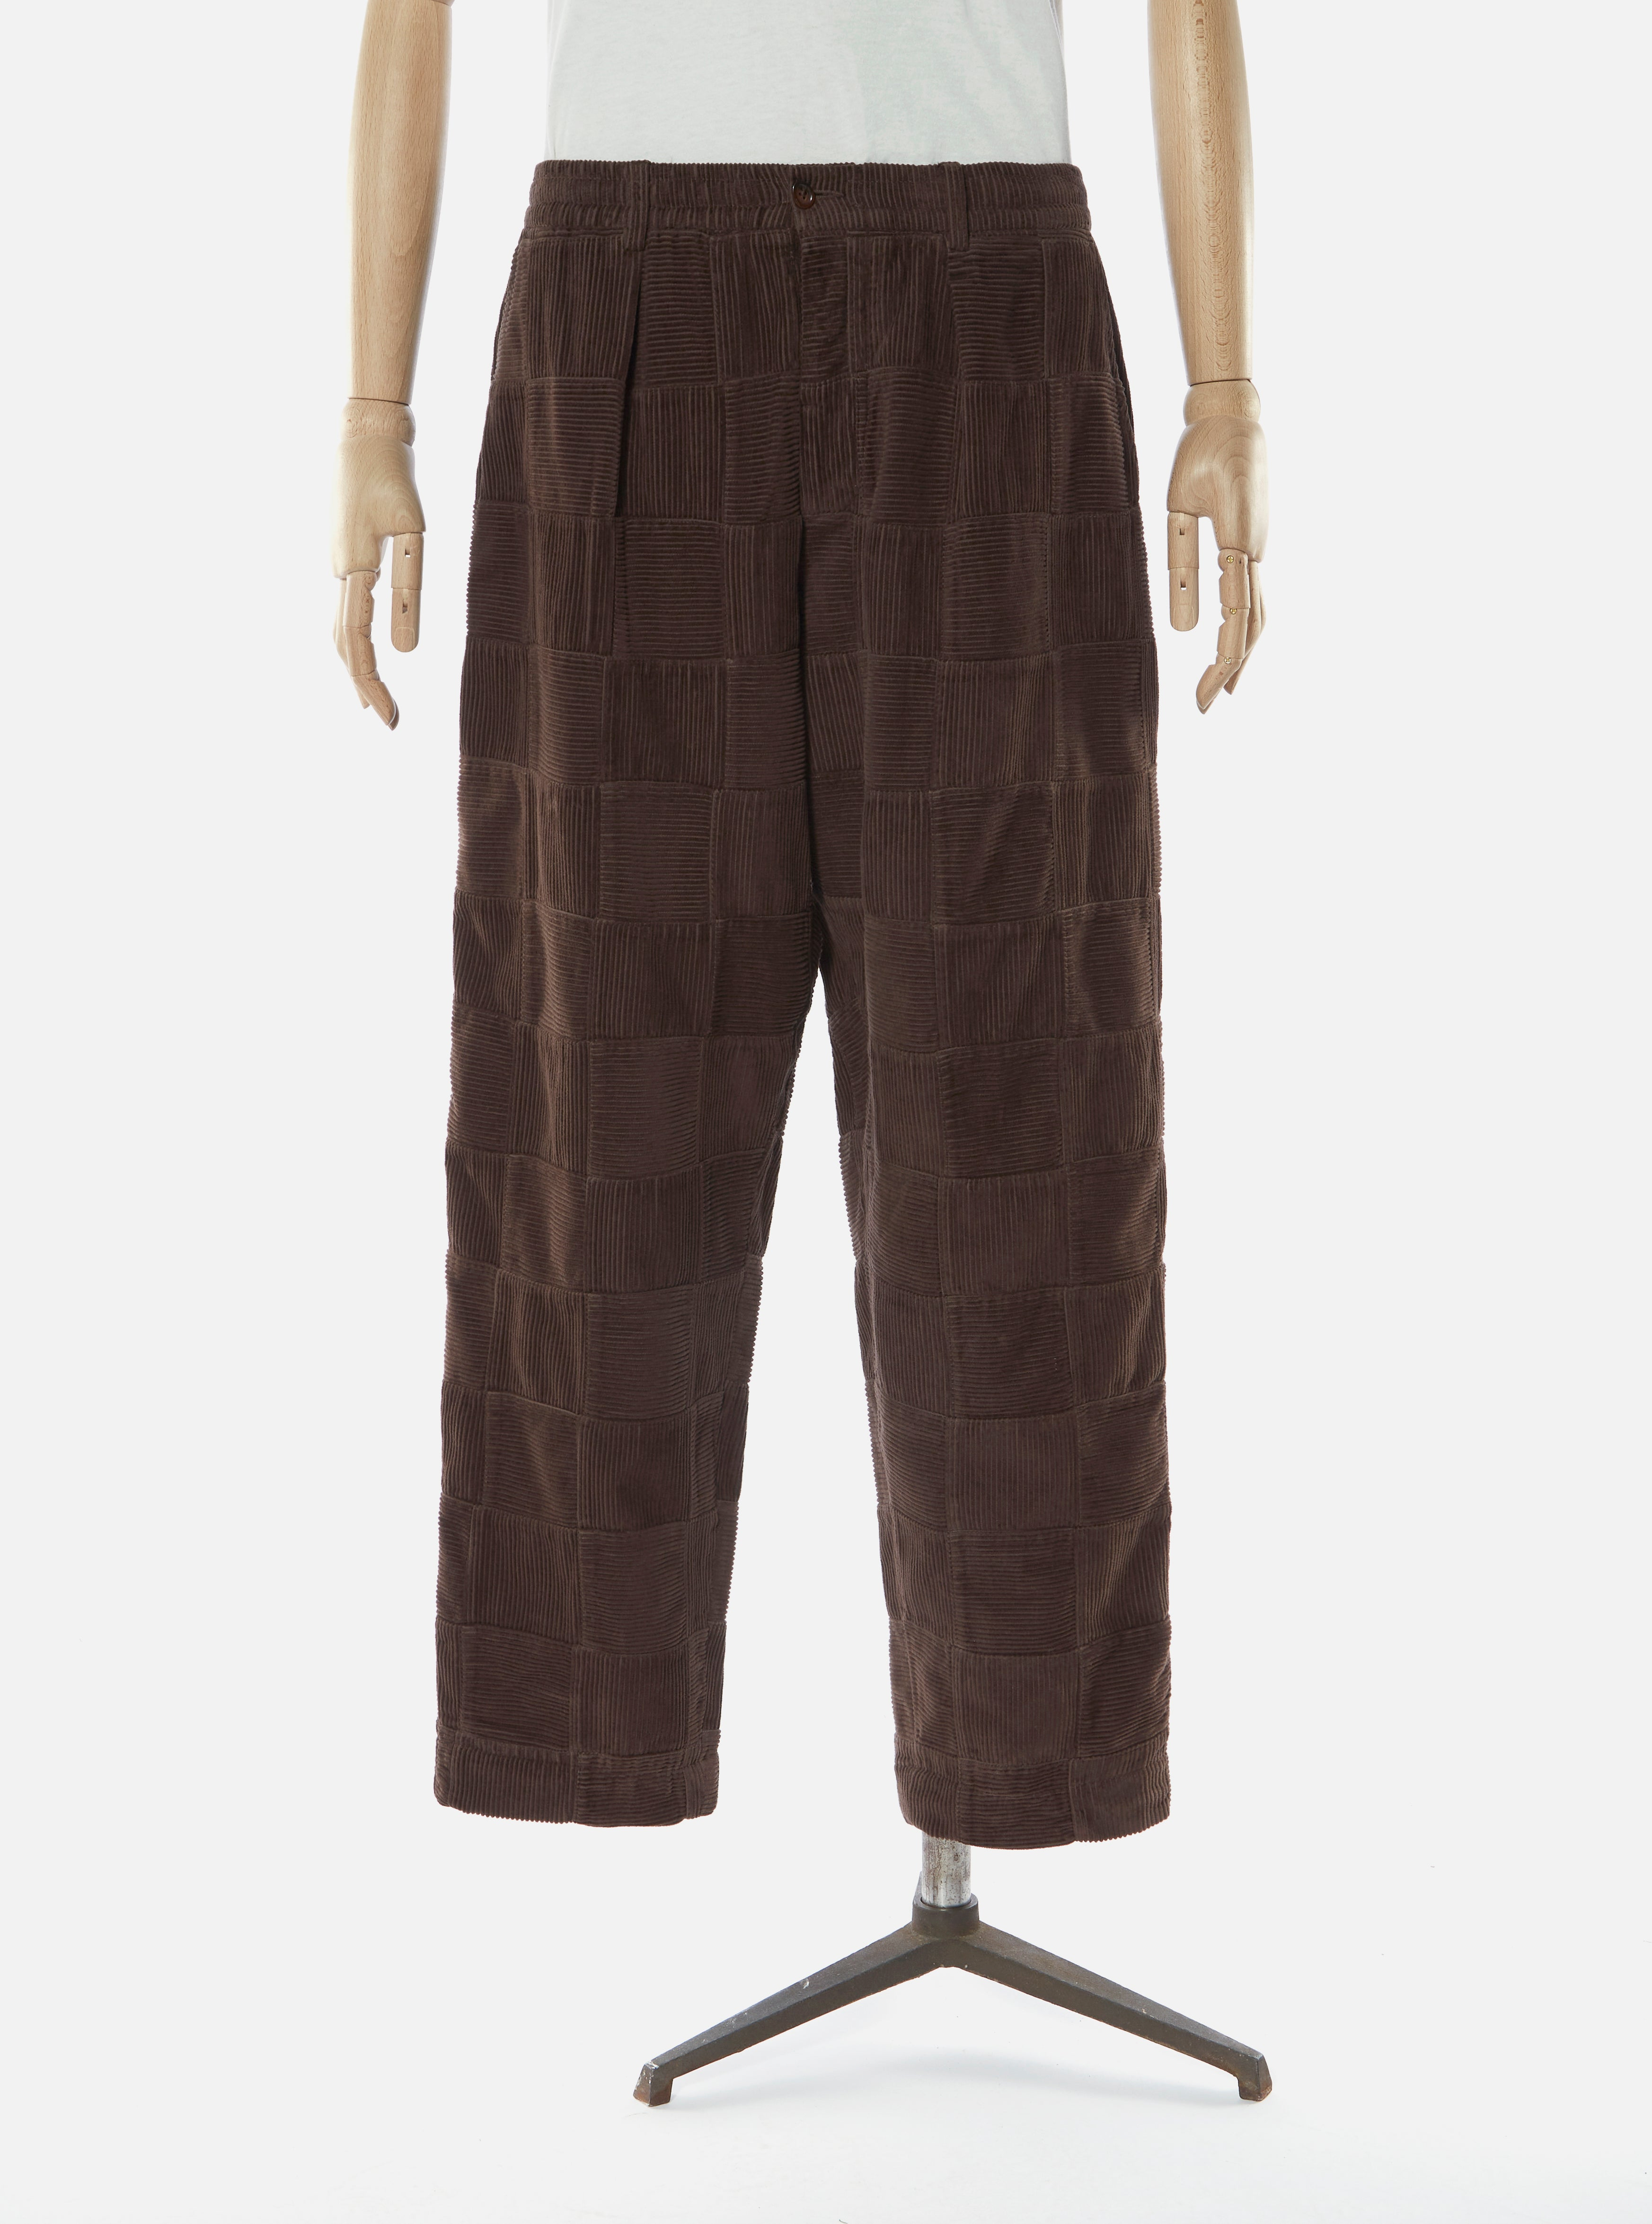 Universal Works Pleated Track Pant in Chocolate Patchwork Cord